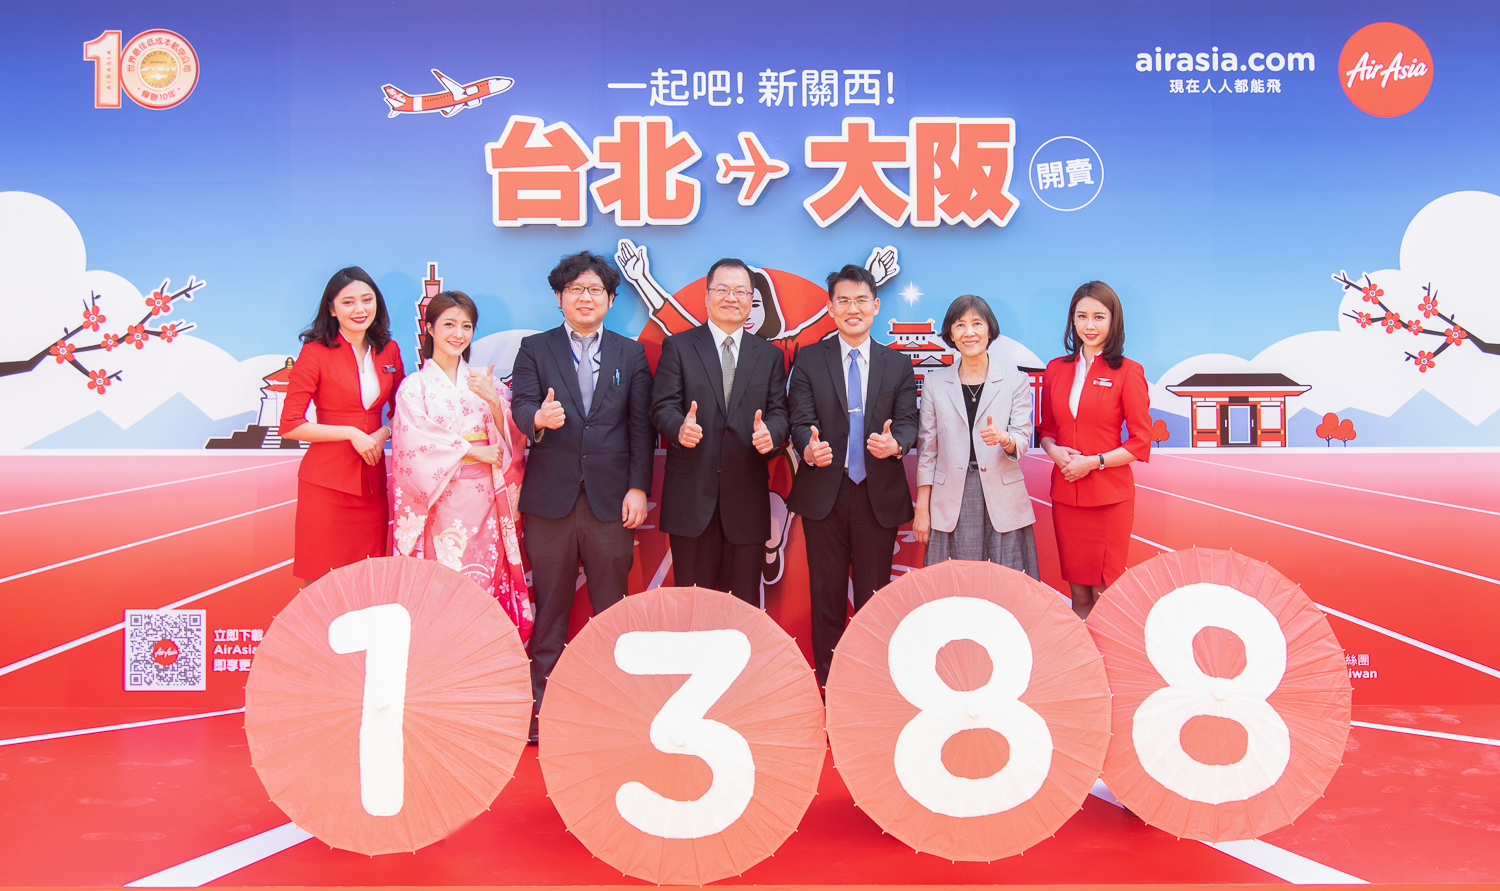 hoto Caption: (L-R) Takahashi,Japan Taiwan Exchange Association ; AirAsia Country Head for Taiwan Al Chen; Han Zhenhua, Civil Aeronautics Administration; Zheng Huiying,Tourism Bureau, Ministry of Transportation and communications Republic of China.